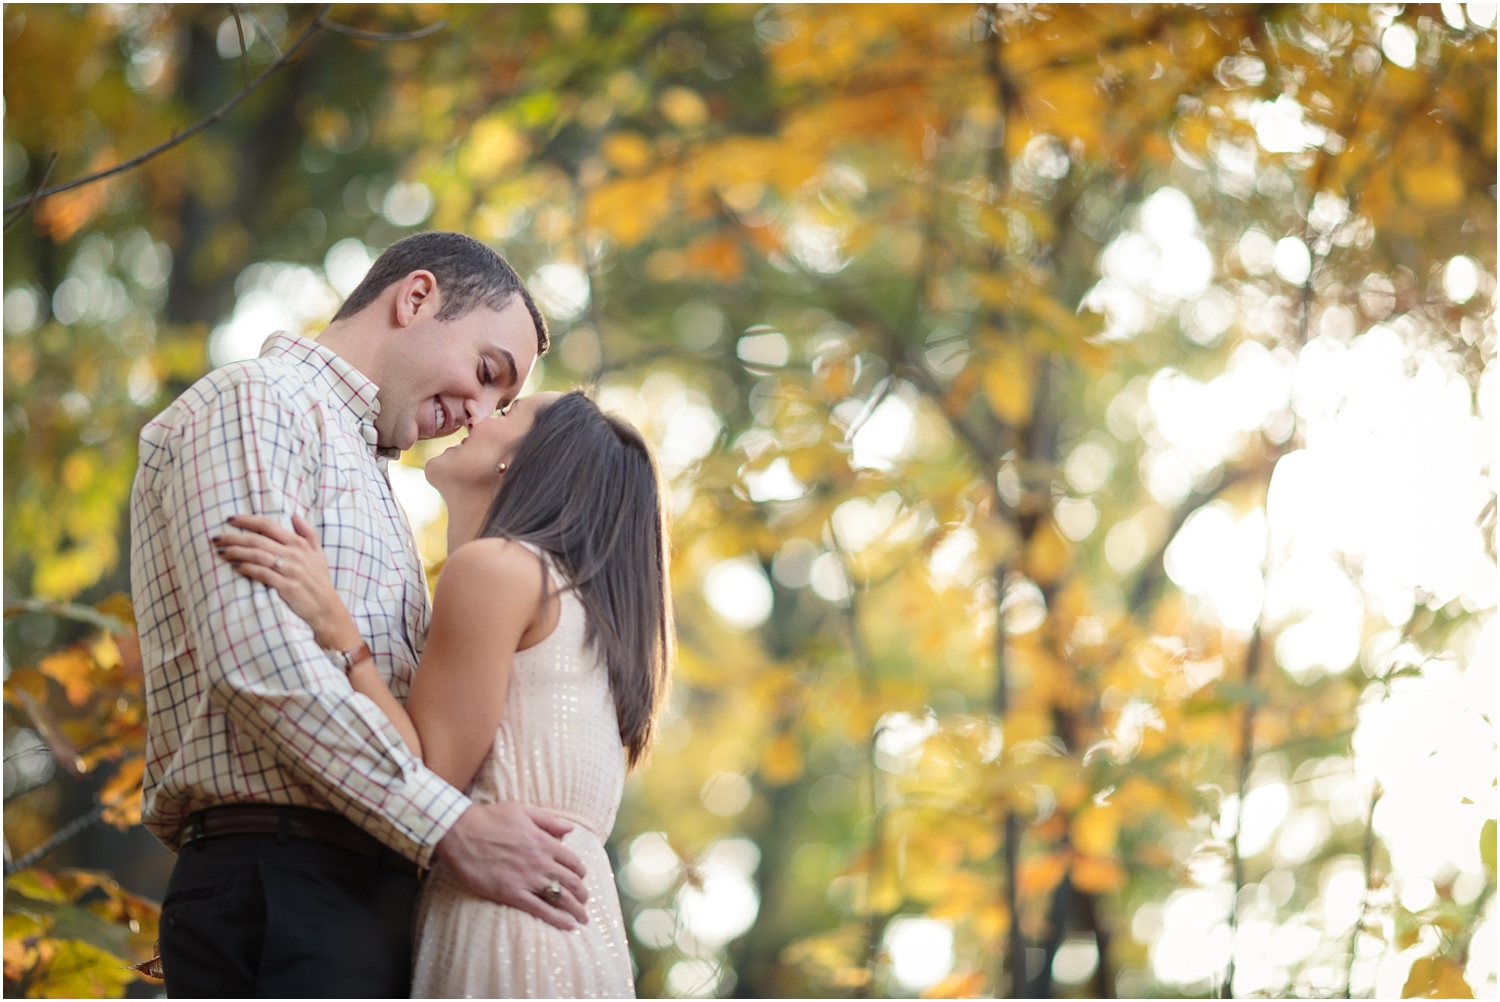 fall-engagement-session-downtown-greenville-photography-8_blog.jpg